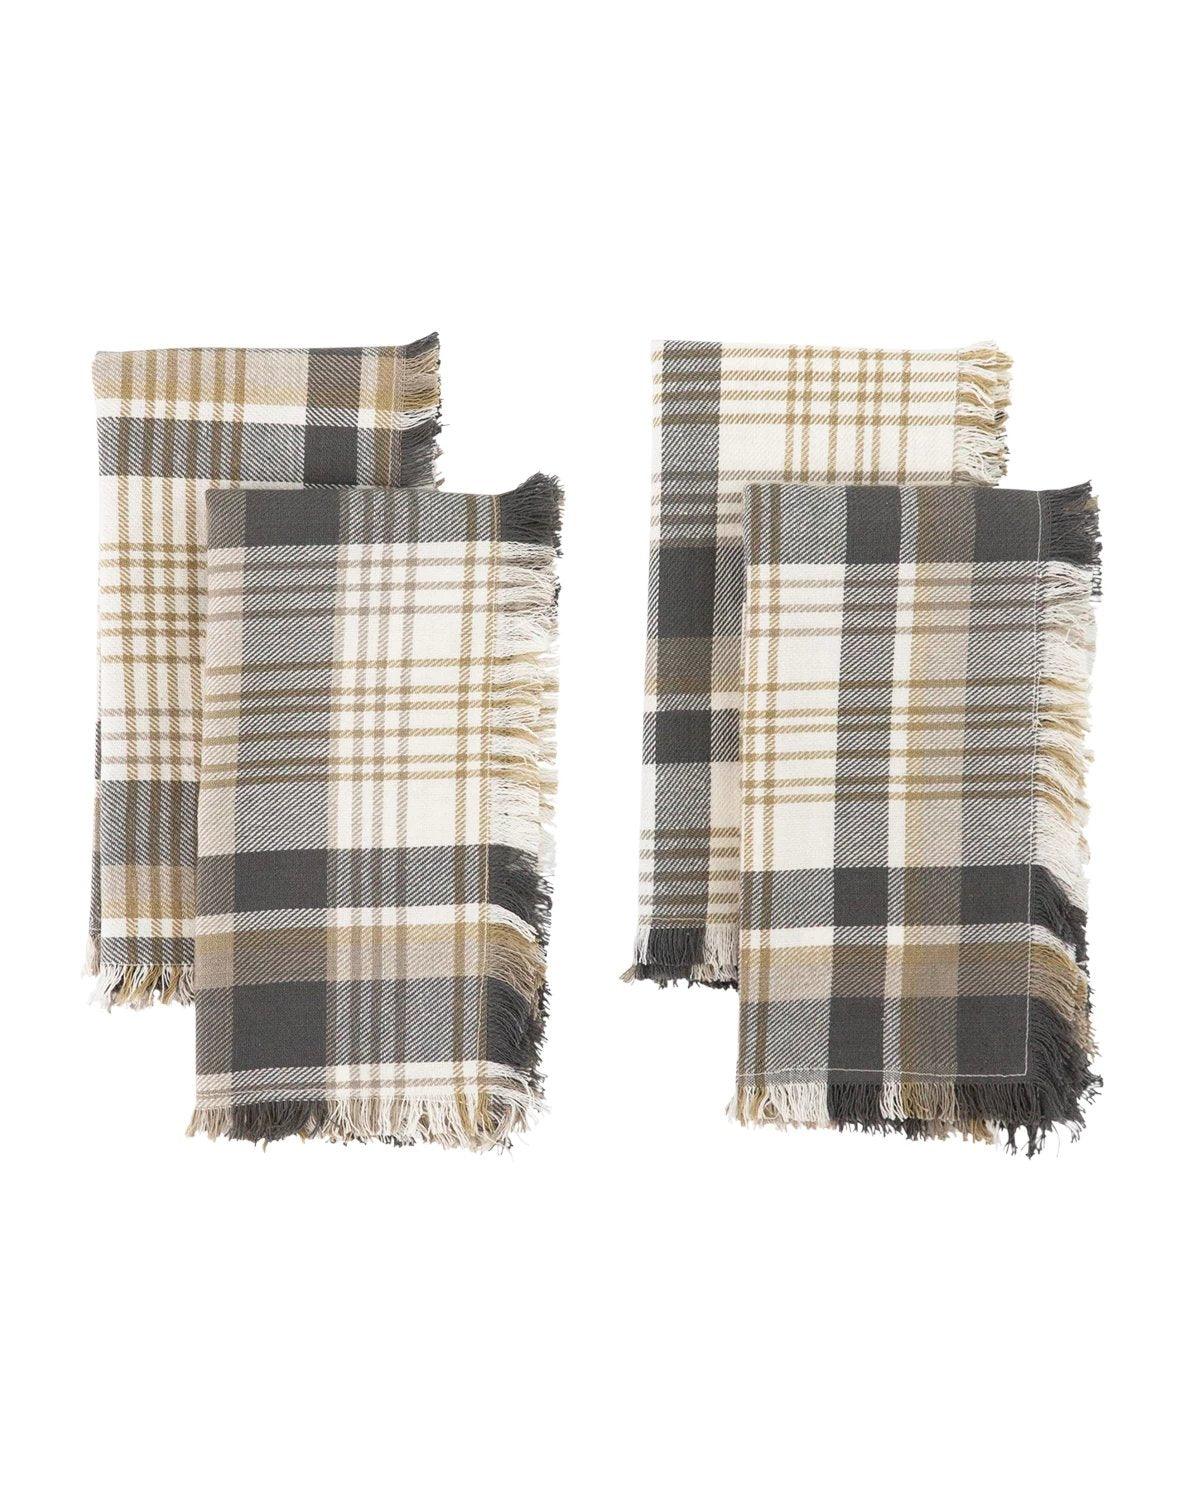 Montgomery Plaid Napkins (Set of 4)